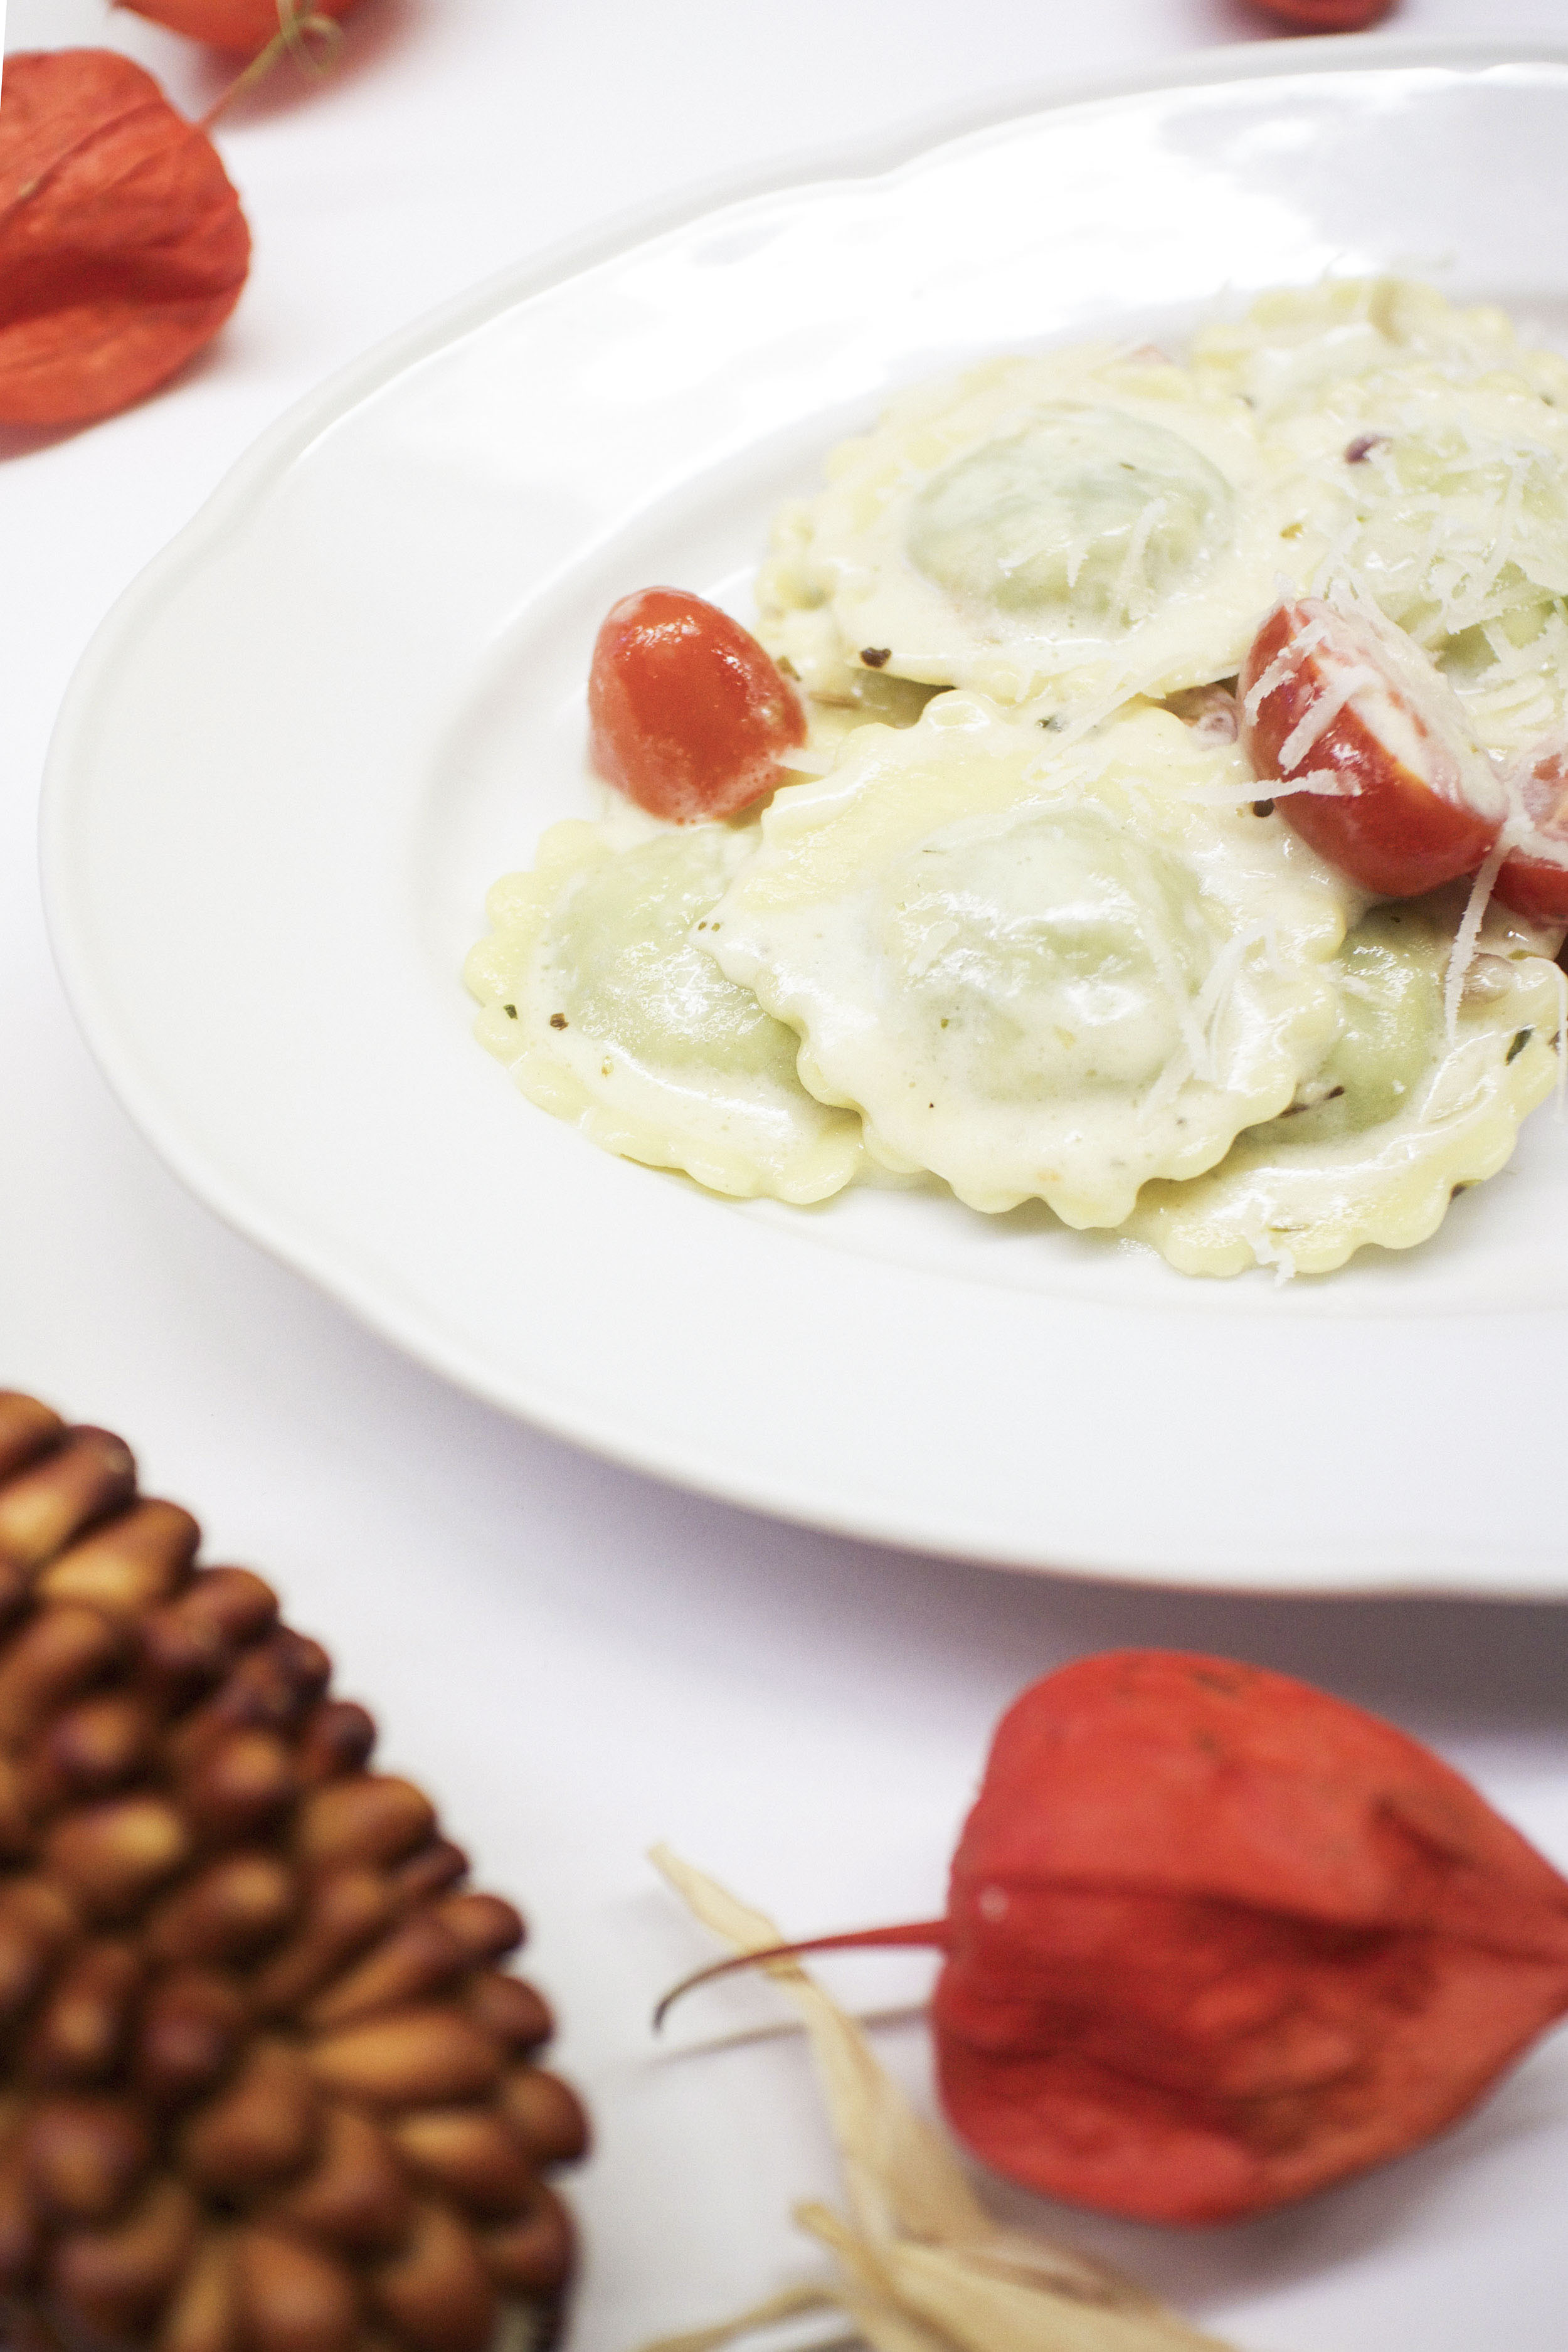 IHEARTALICE – Fashion, Travel, Lifestyle & Food-Blog by Alice M. Huynh: Selfmade/Homemade Spinach-Ricotta Ravioli in Honey-Cream Sauce Recipe / Column by Yvi Huynh